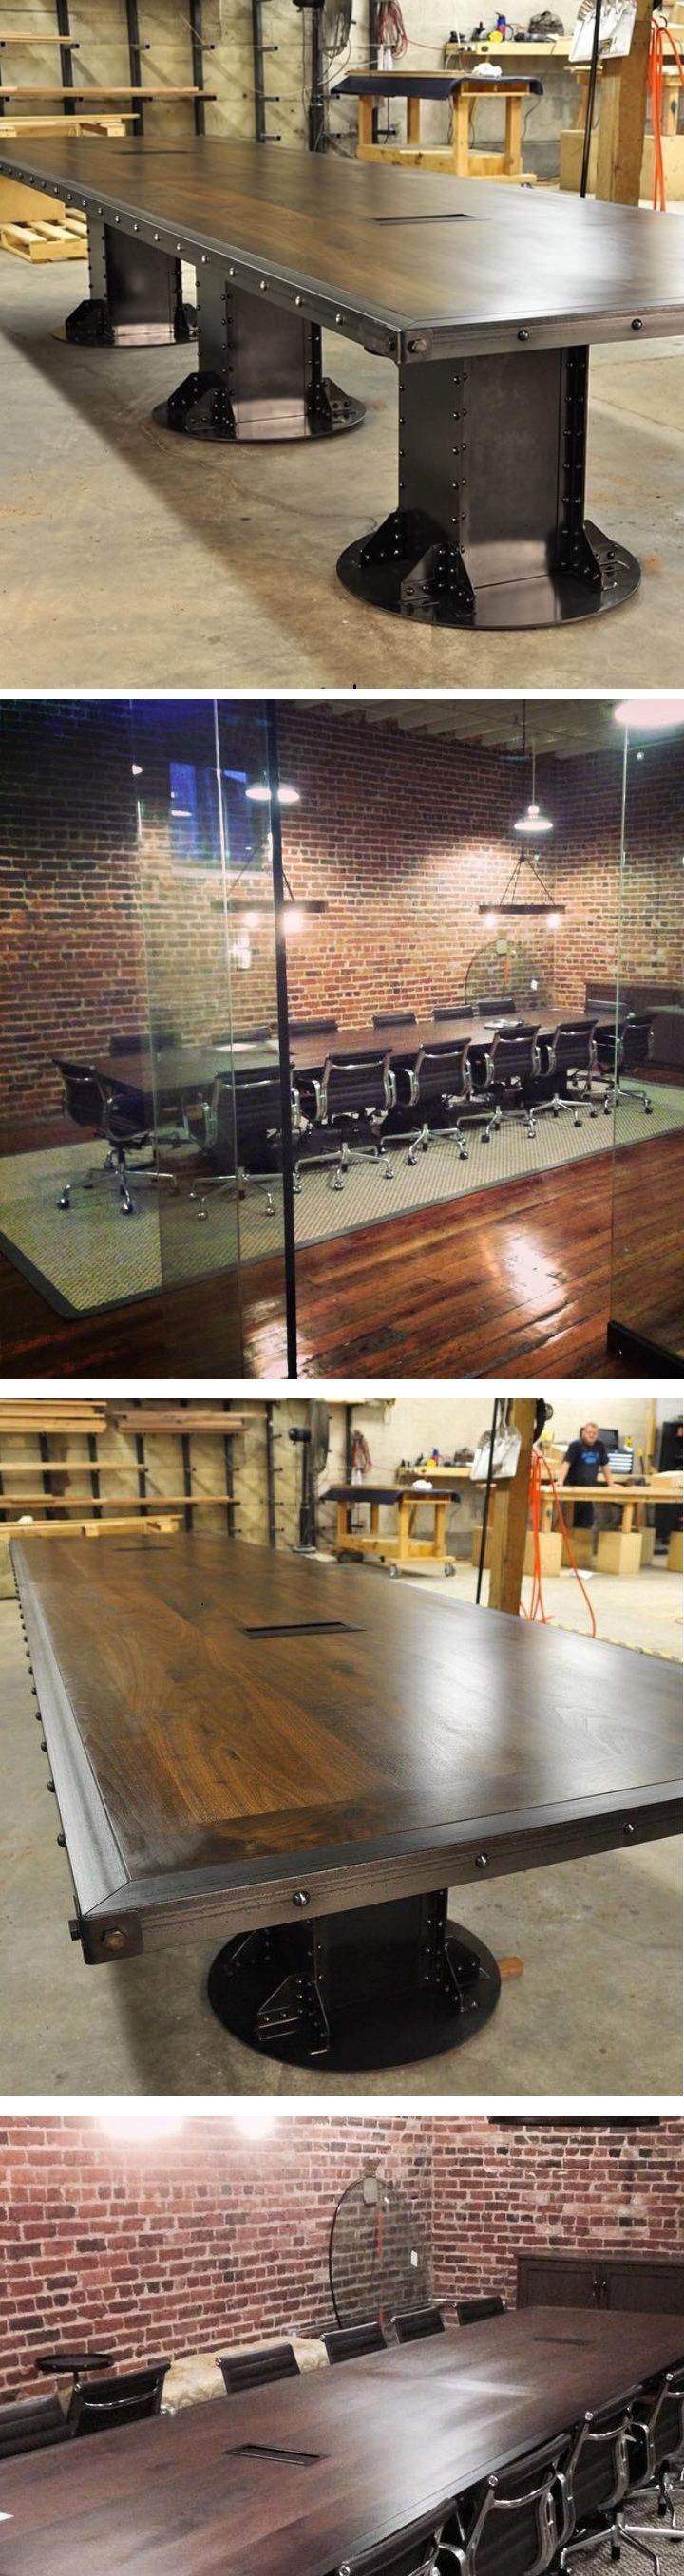 I Beam Conference Table, before and after shots by Vintage Industrial Furniture in Phoenix, AZ